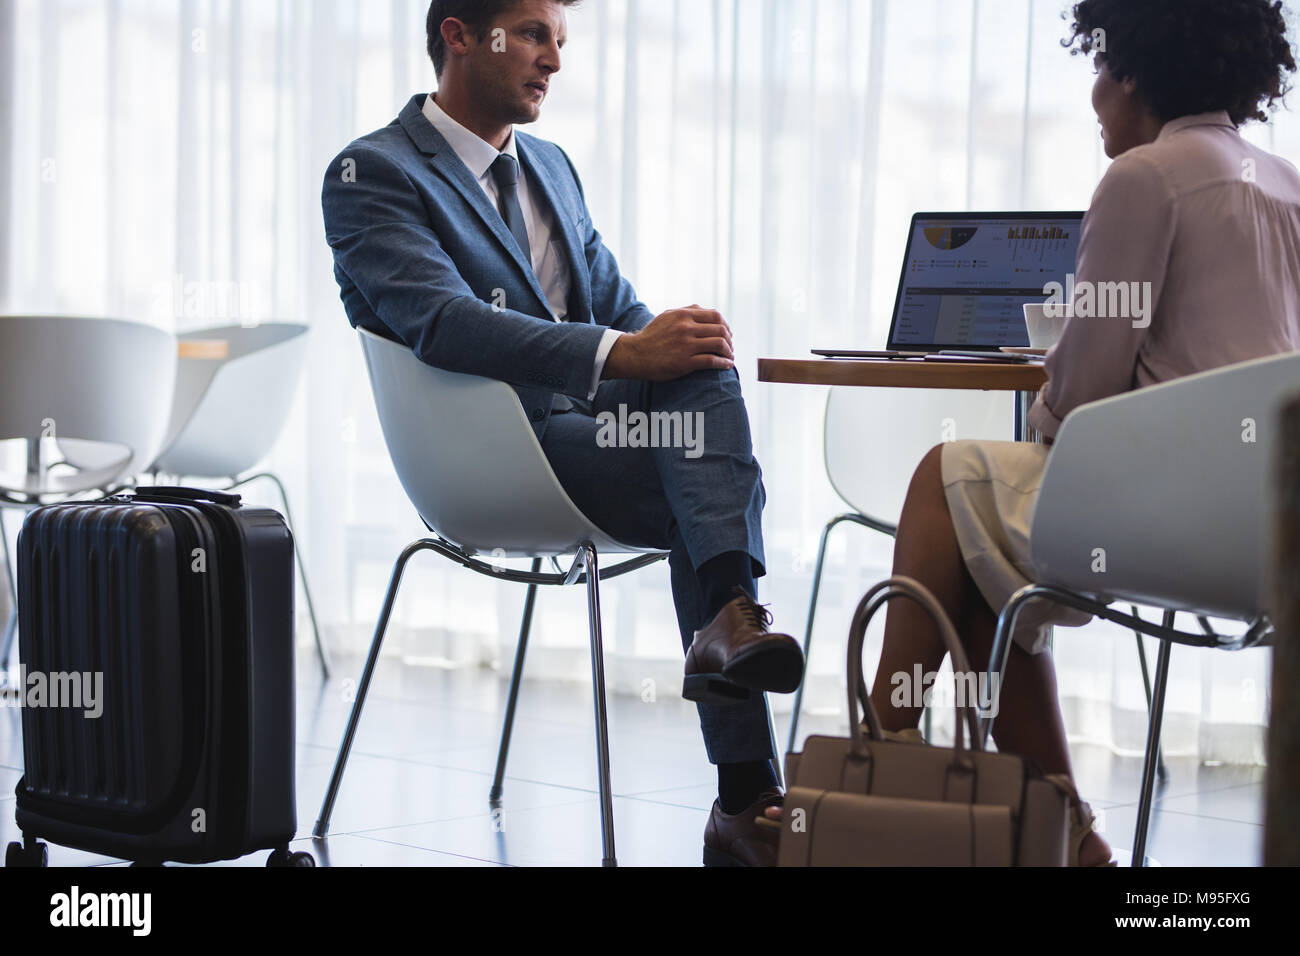 Two business colleagues sitting at airport lounge and discussing work while waiting for their flight. Business travelers talking at airport waiting ar - Stock Image